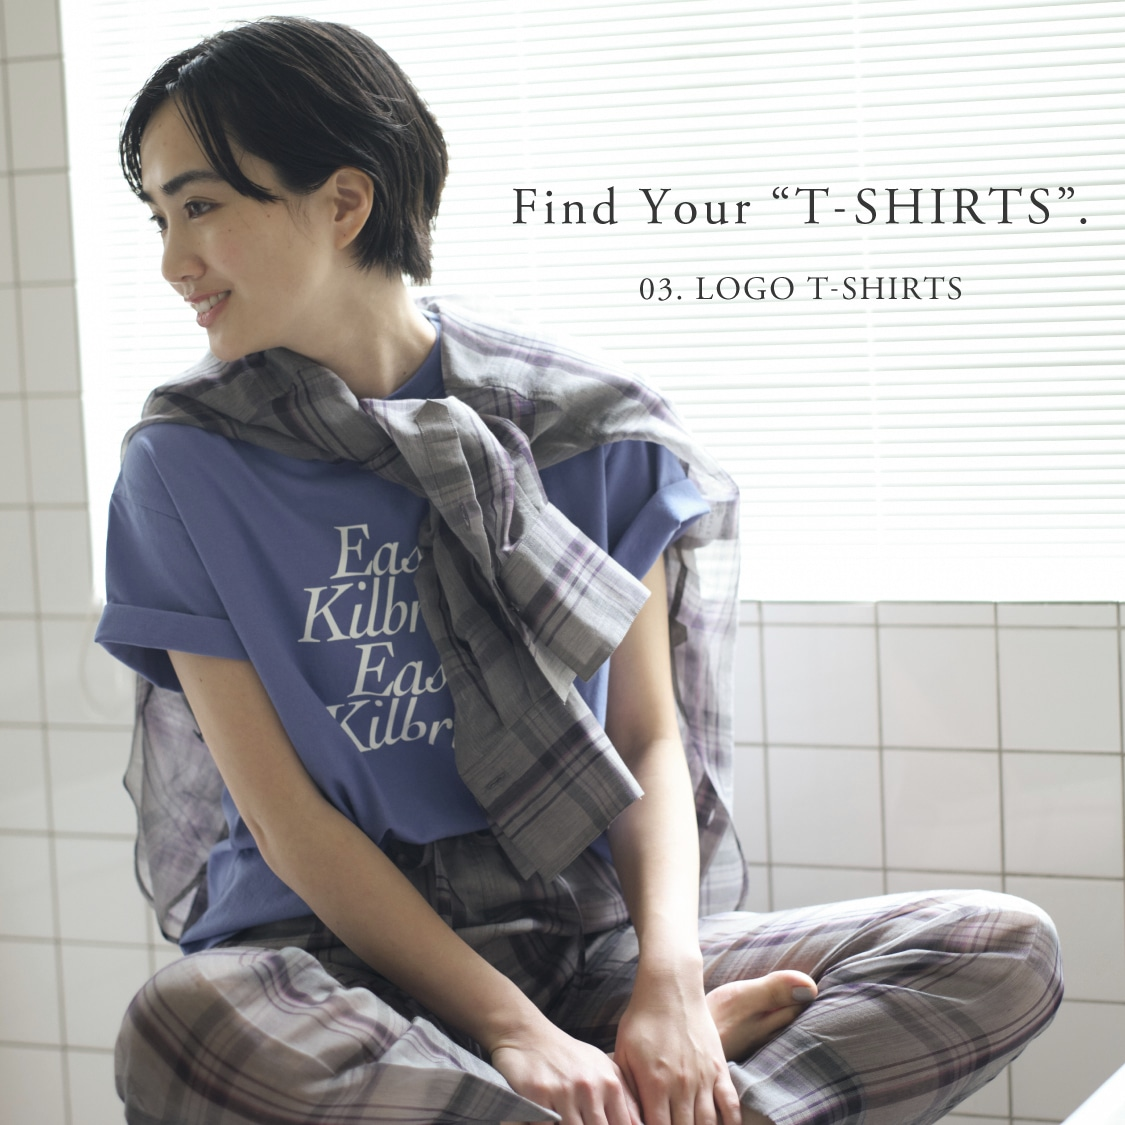 """Find Your """"T-SHIRTS"""". 03 LOGO"""